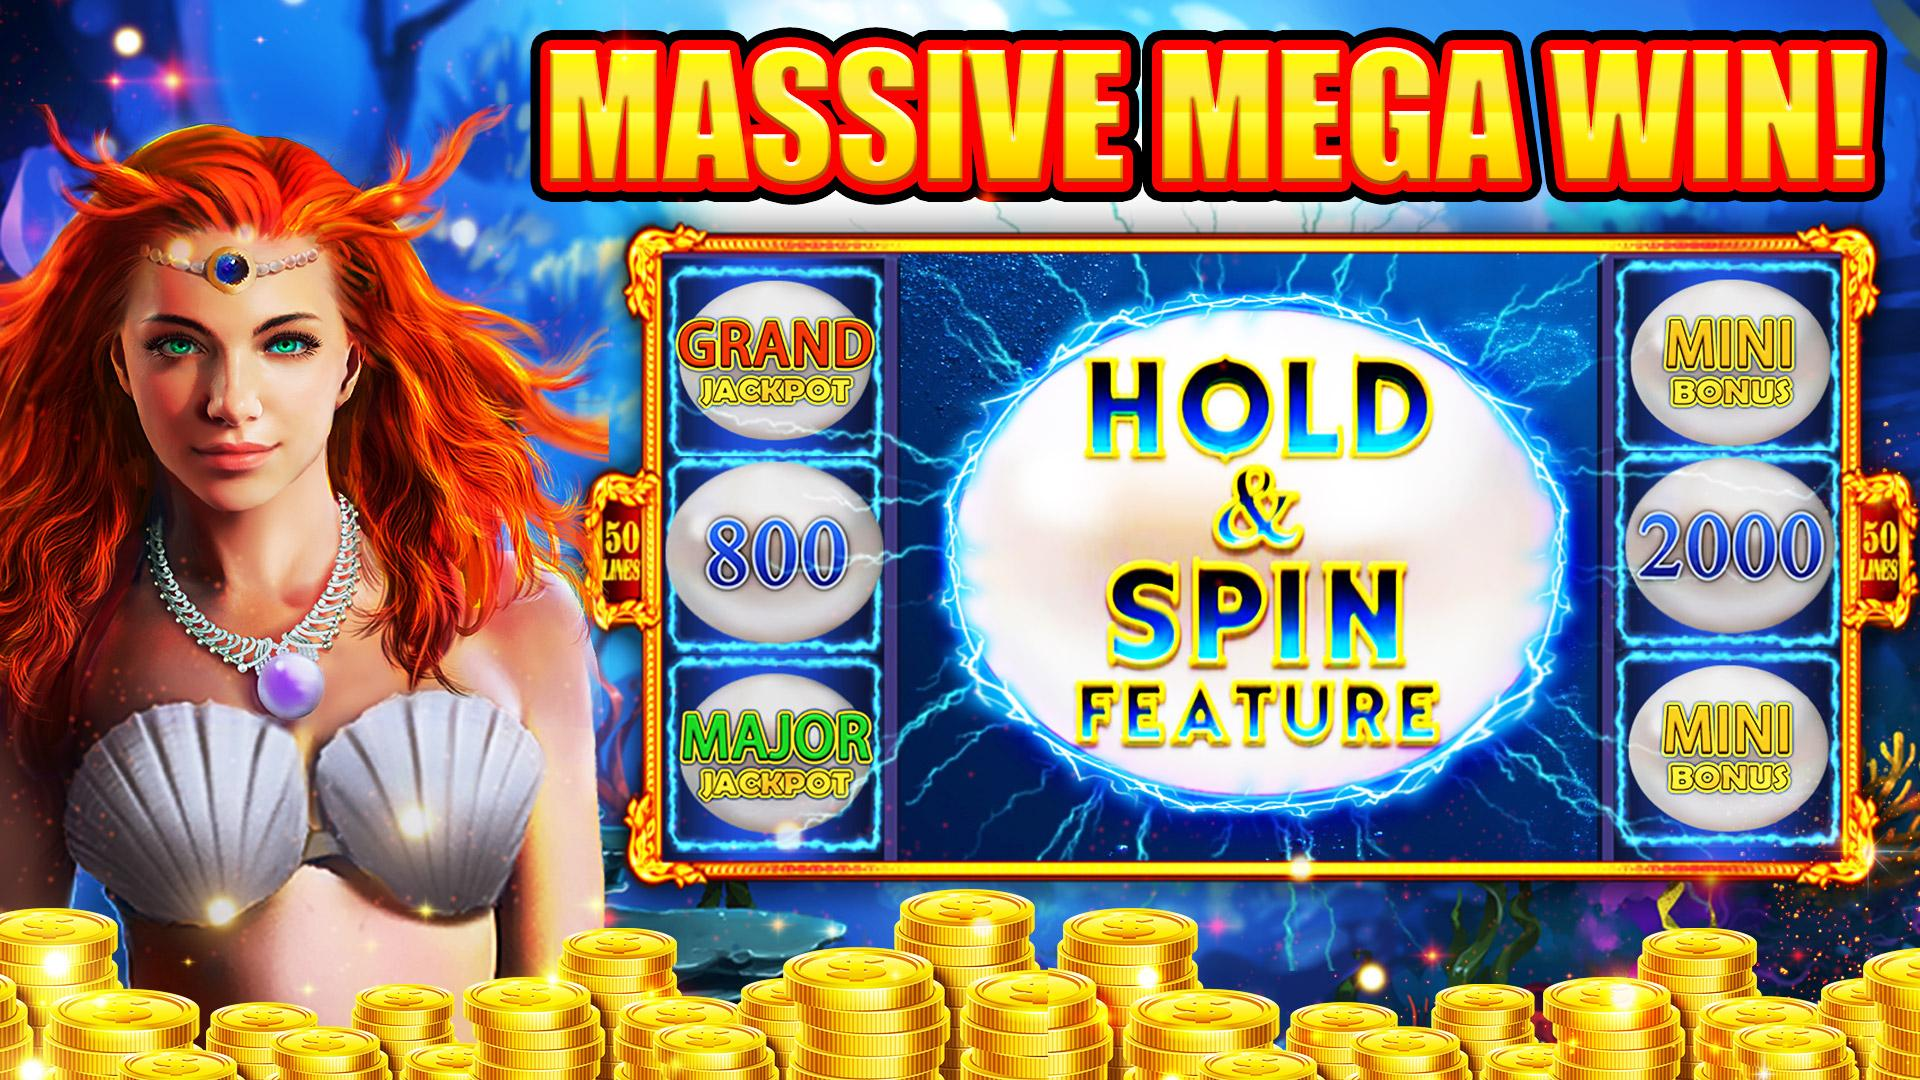 Grand Jackpot Slots Pop Vegas Casino Free Games 1.0.44 Screenshot 15